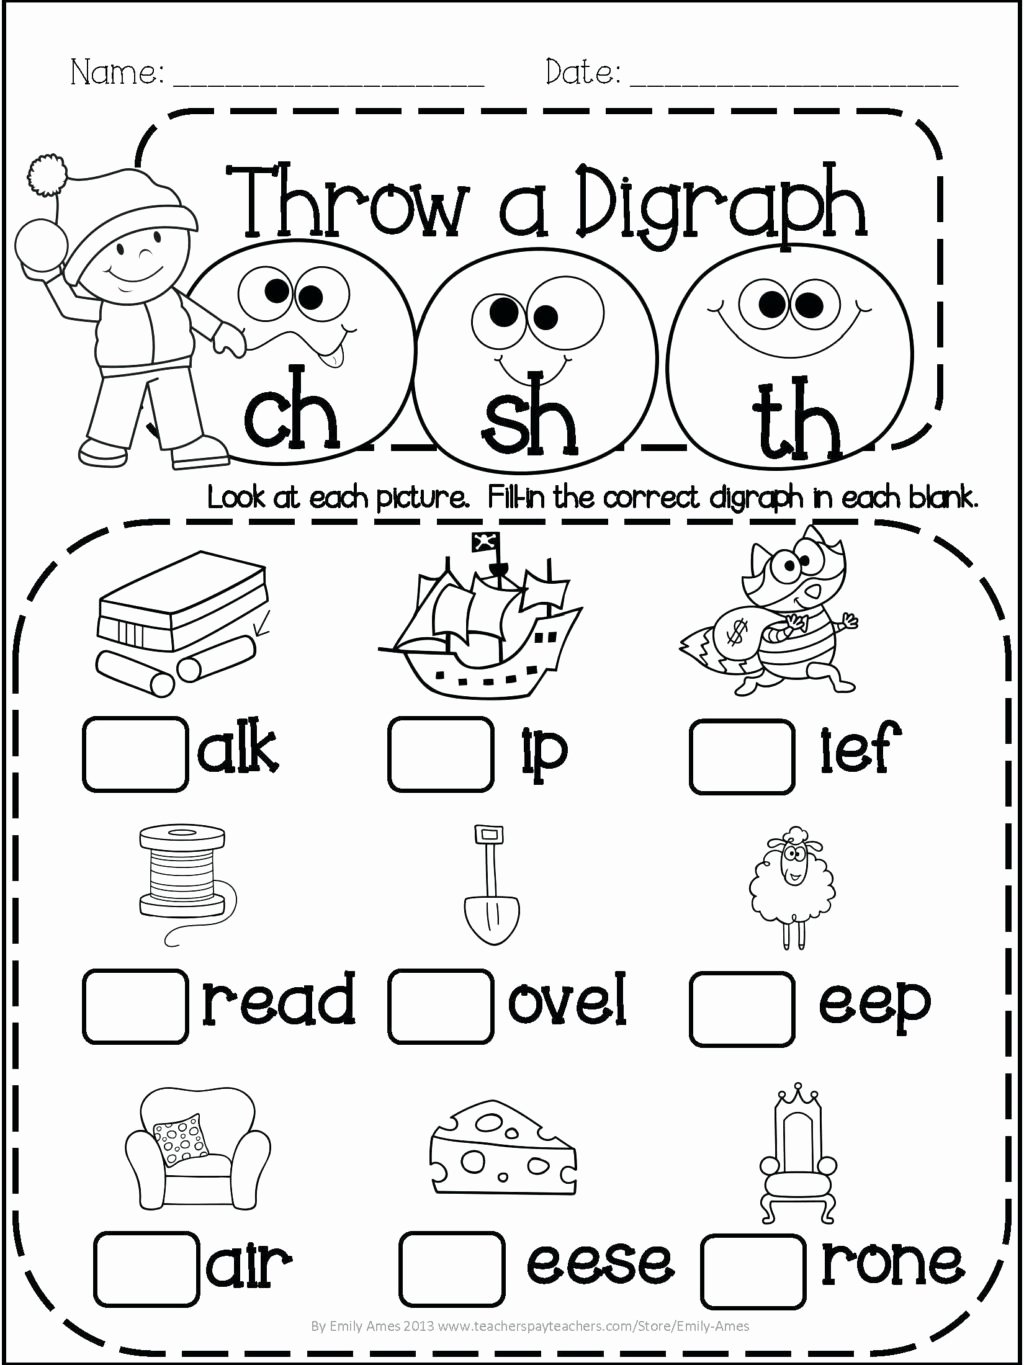 Veterans Day Worksheets for Preschoolers Unique Worksheet Printable Worksheets Preschool Numbers Free for